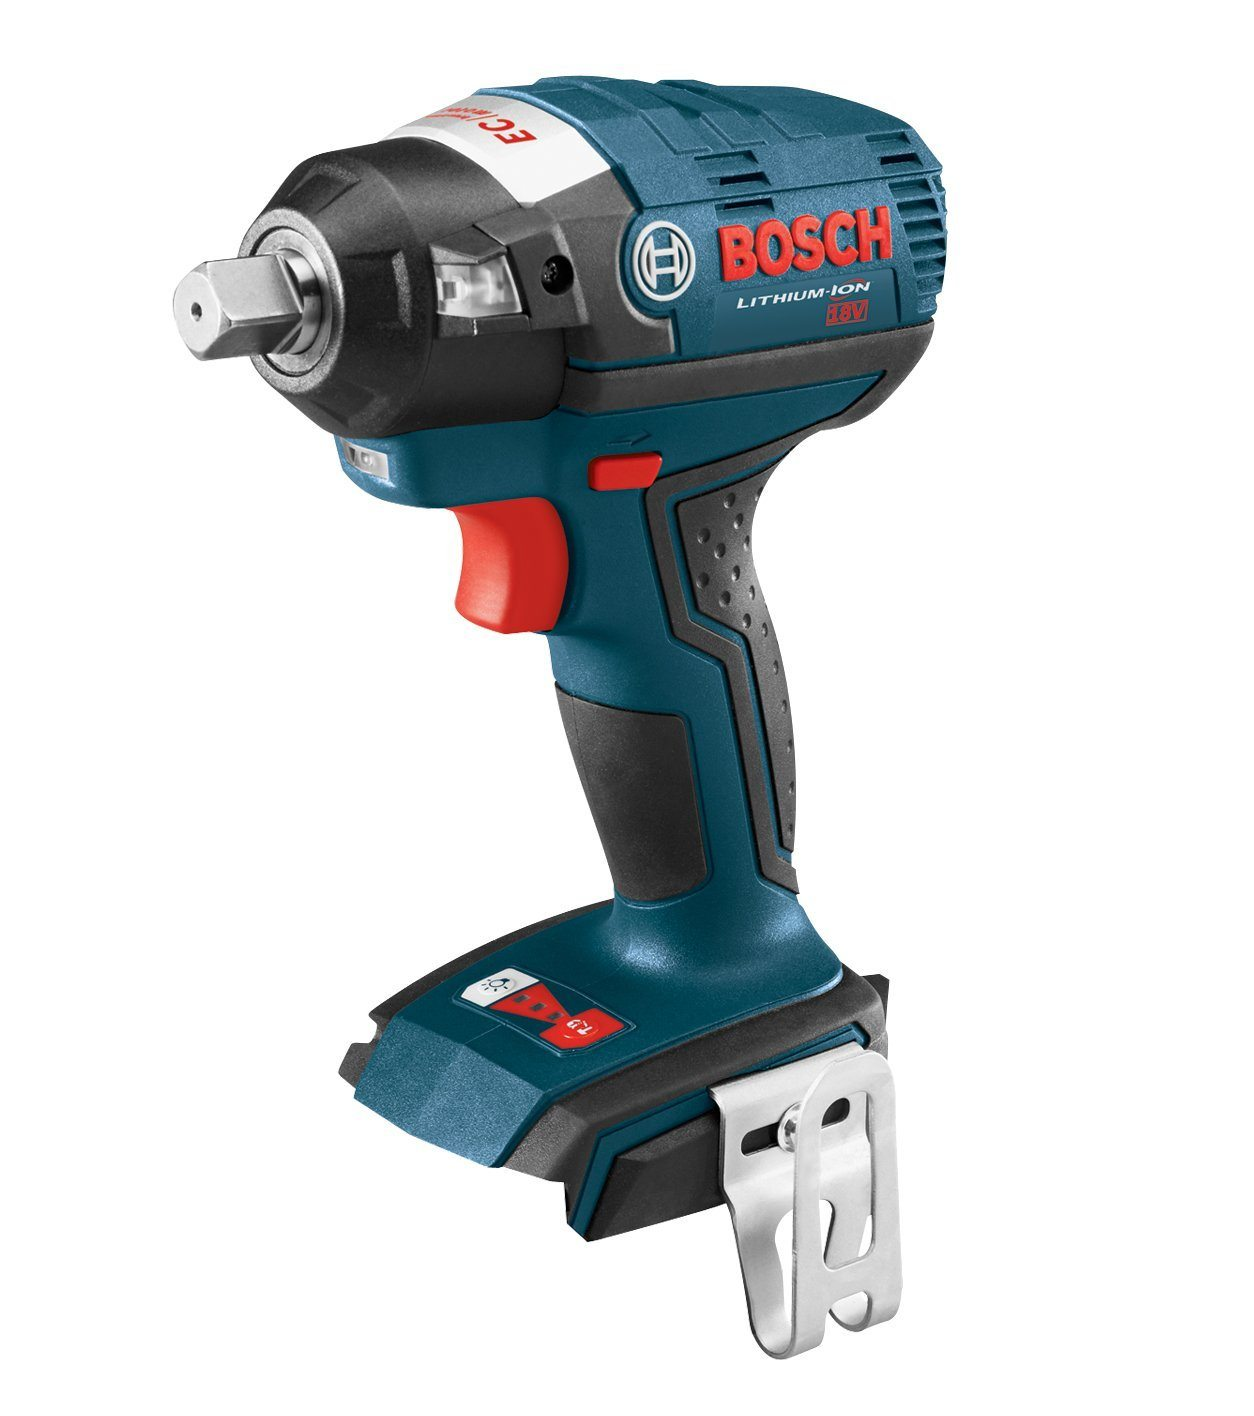 6 best cordless impact wrench sets of 2018 torque wrenches. Black Bedroom Furniture Sets. Home Design Ideas